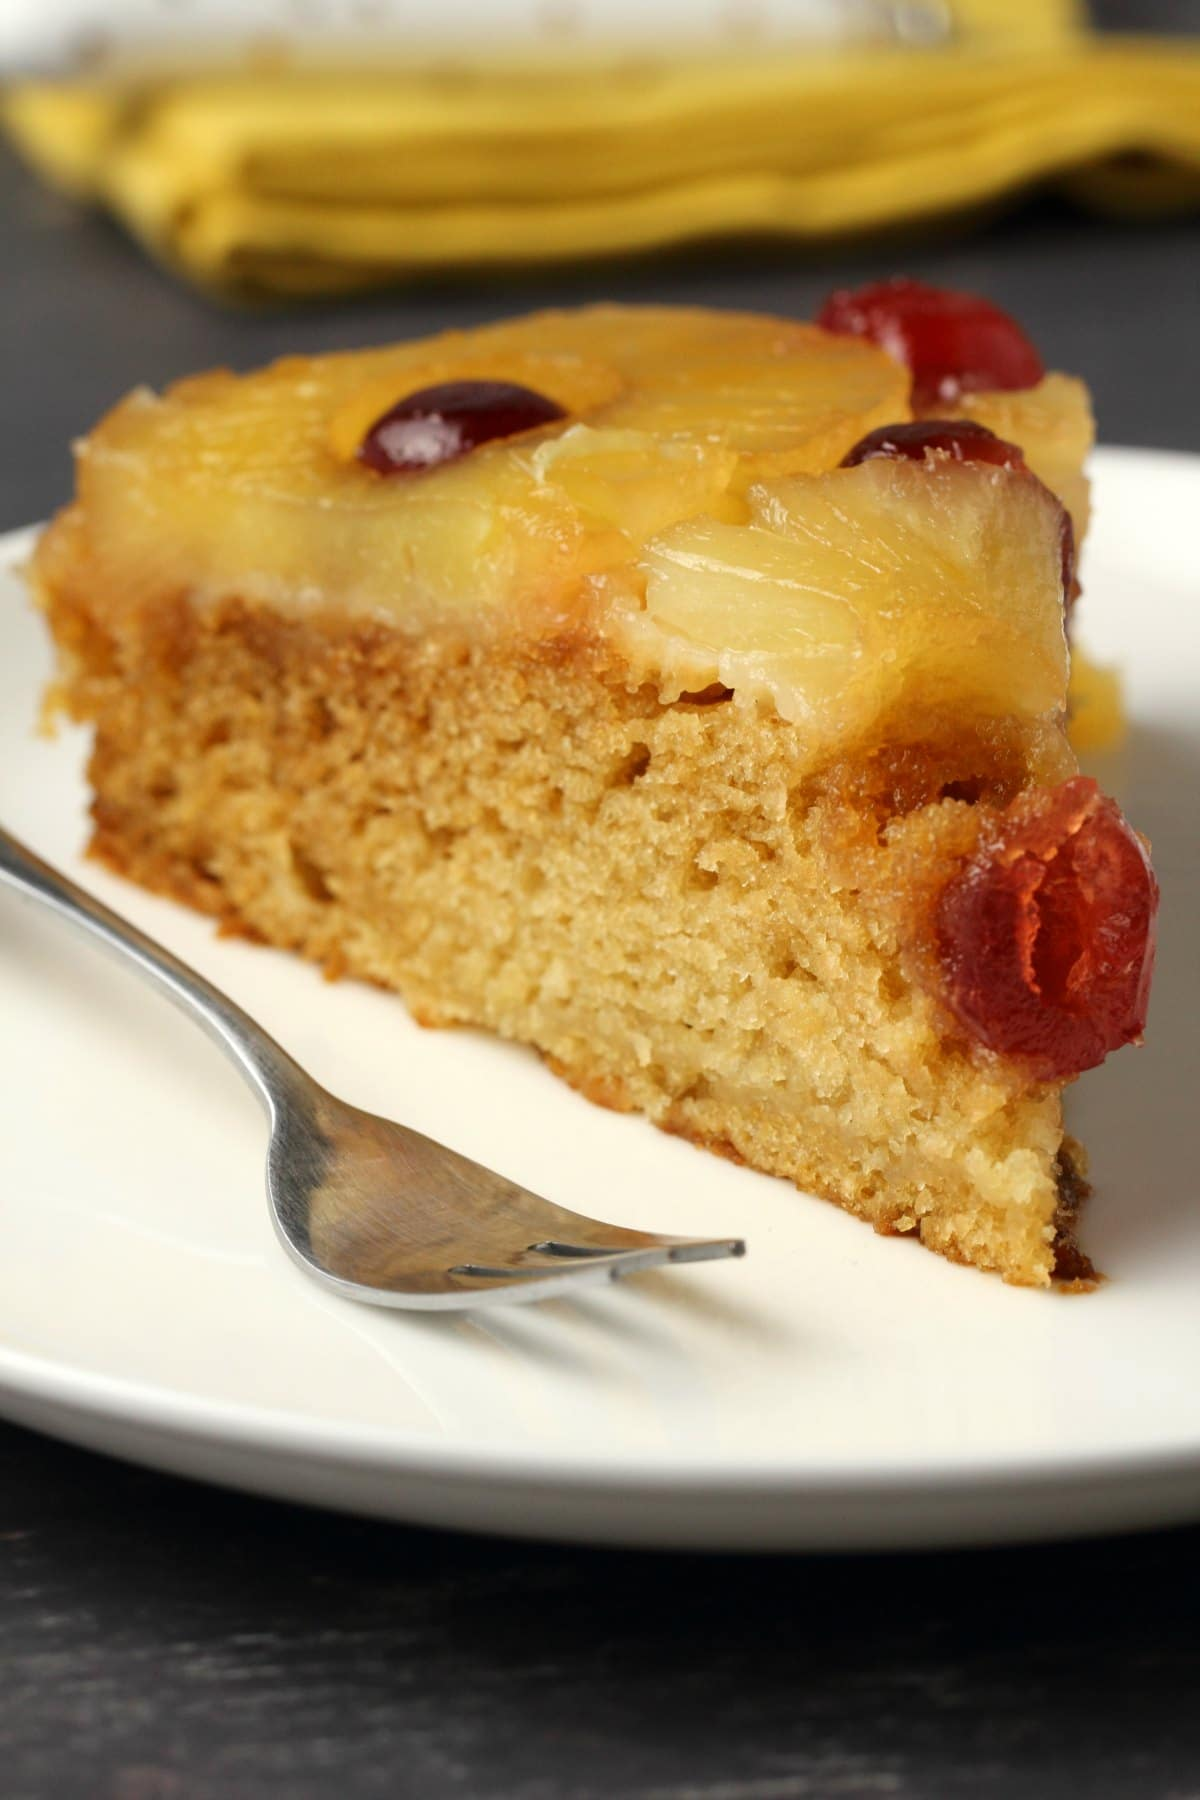 A slice of vegan pineapple upside down cake on a white plate with a cake fork.